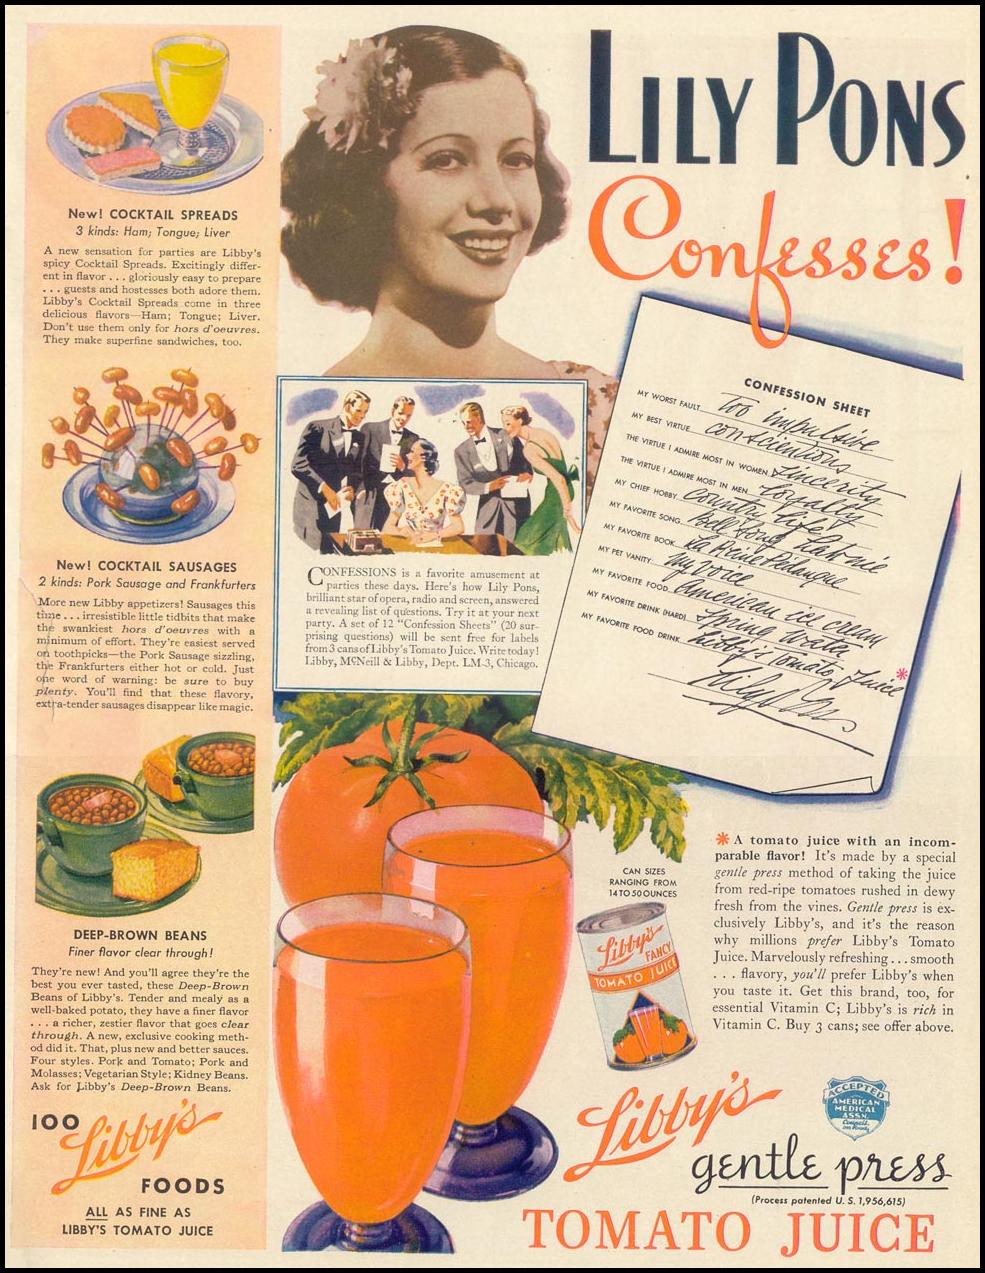 LIBBY'S GENTLE PRESS TOMATO JUICE LIFE 09/13/1937